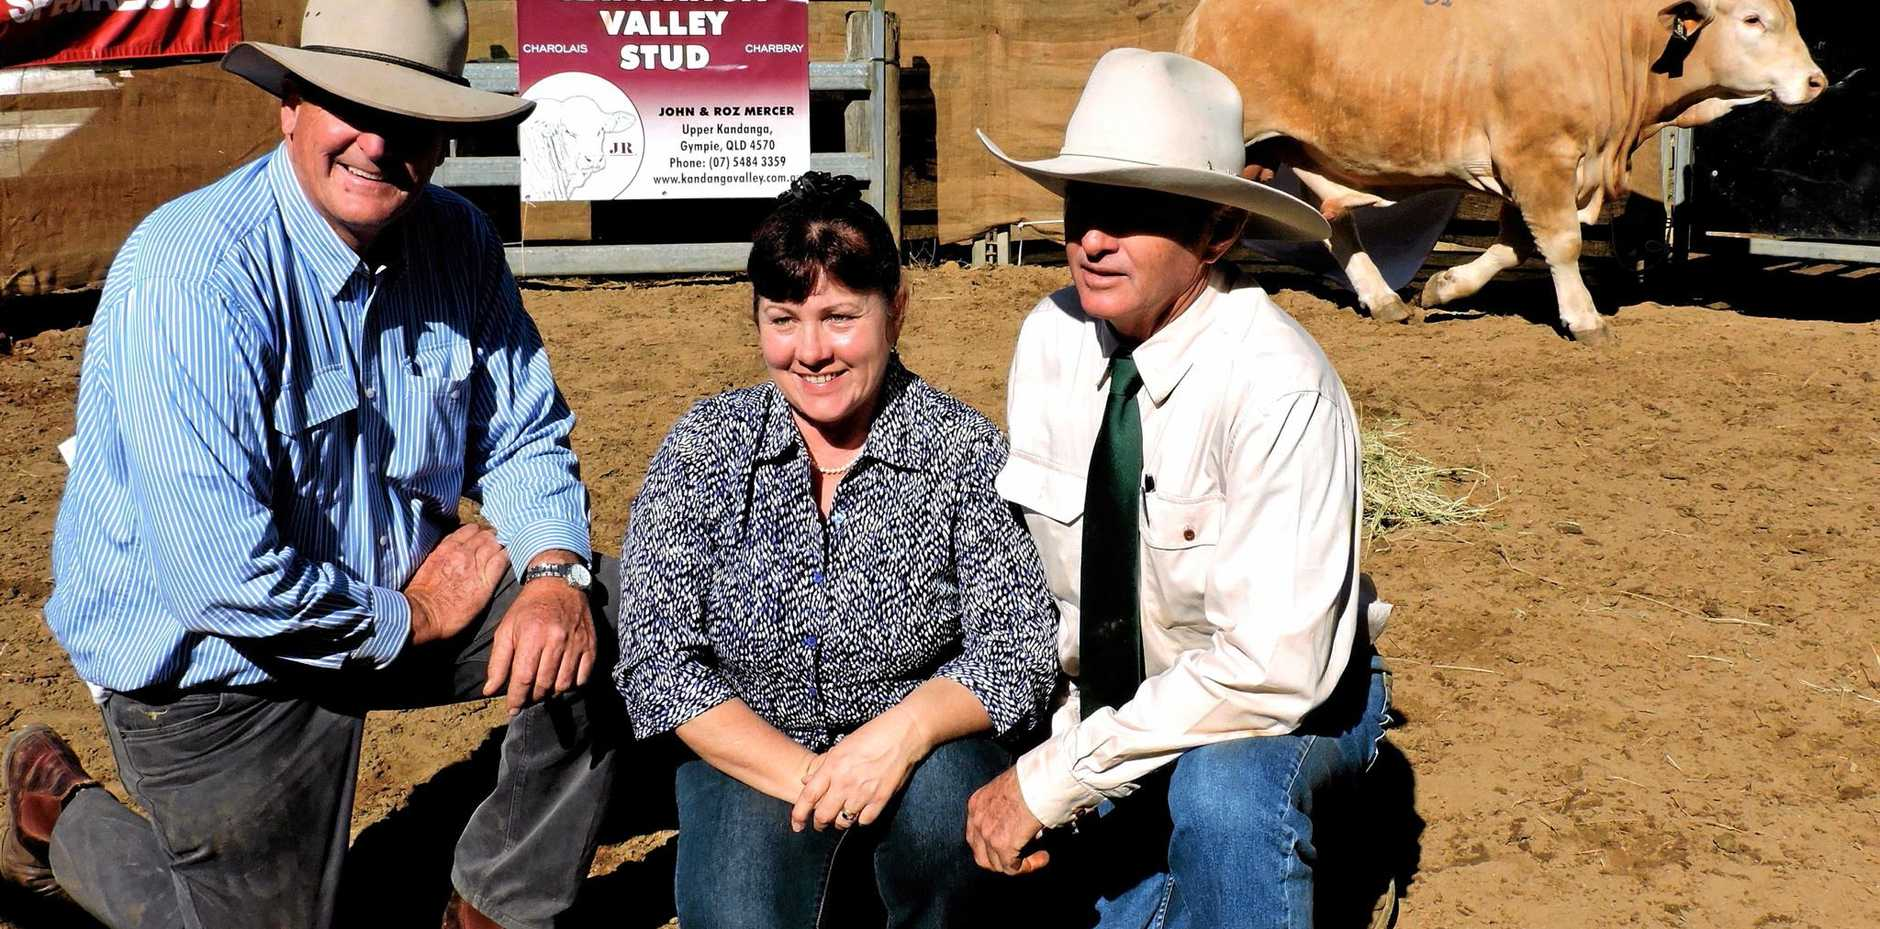 TOP PRICE: Buyer Michael Connolly (left) and Roz and John Mercer with KV Kane, which topped the sale at $14,000.